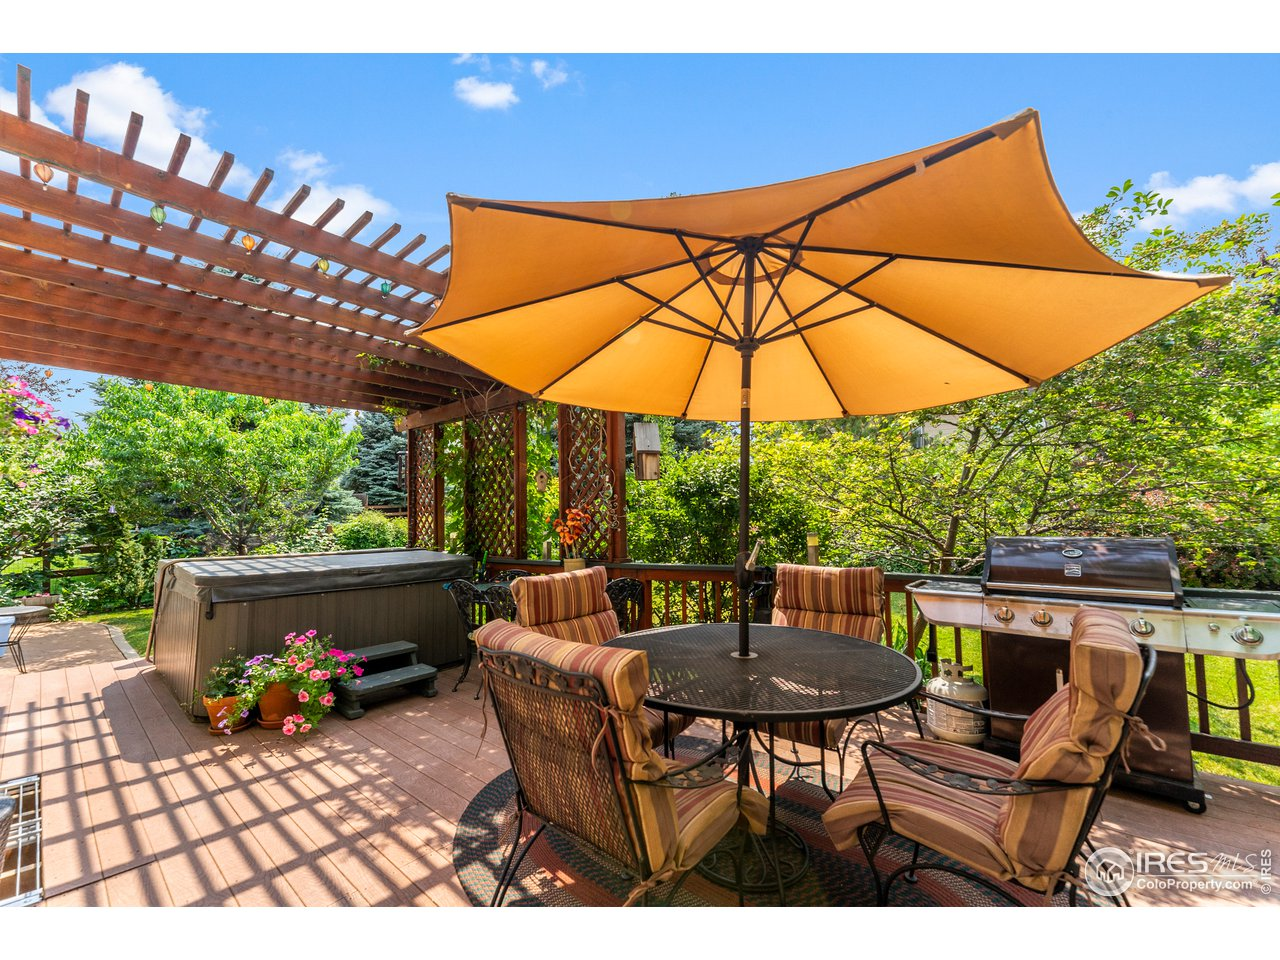 Cozy and idyllic back deck and yard!